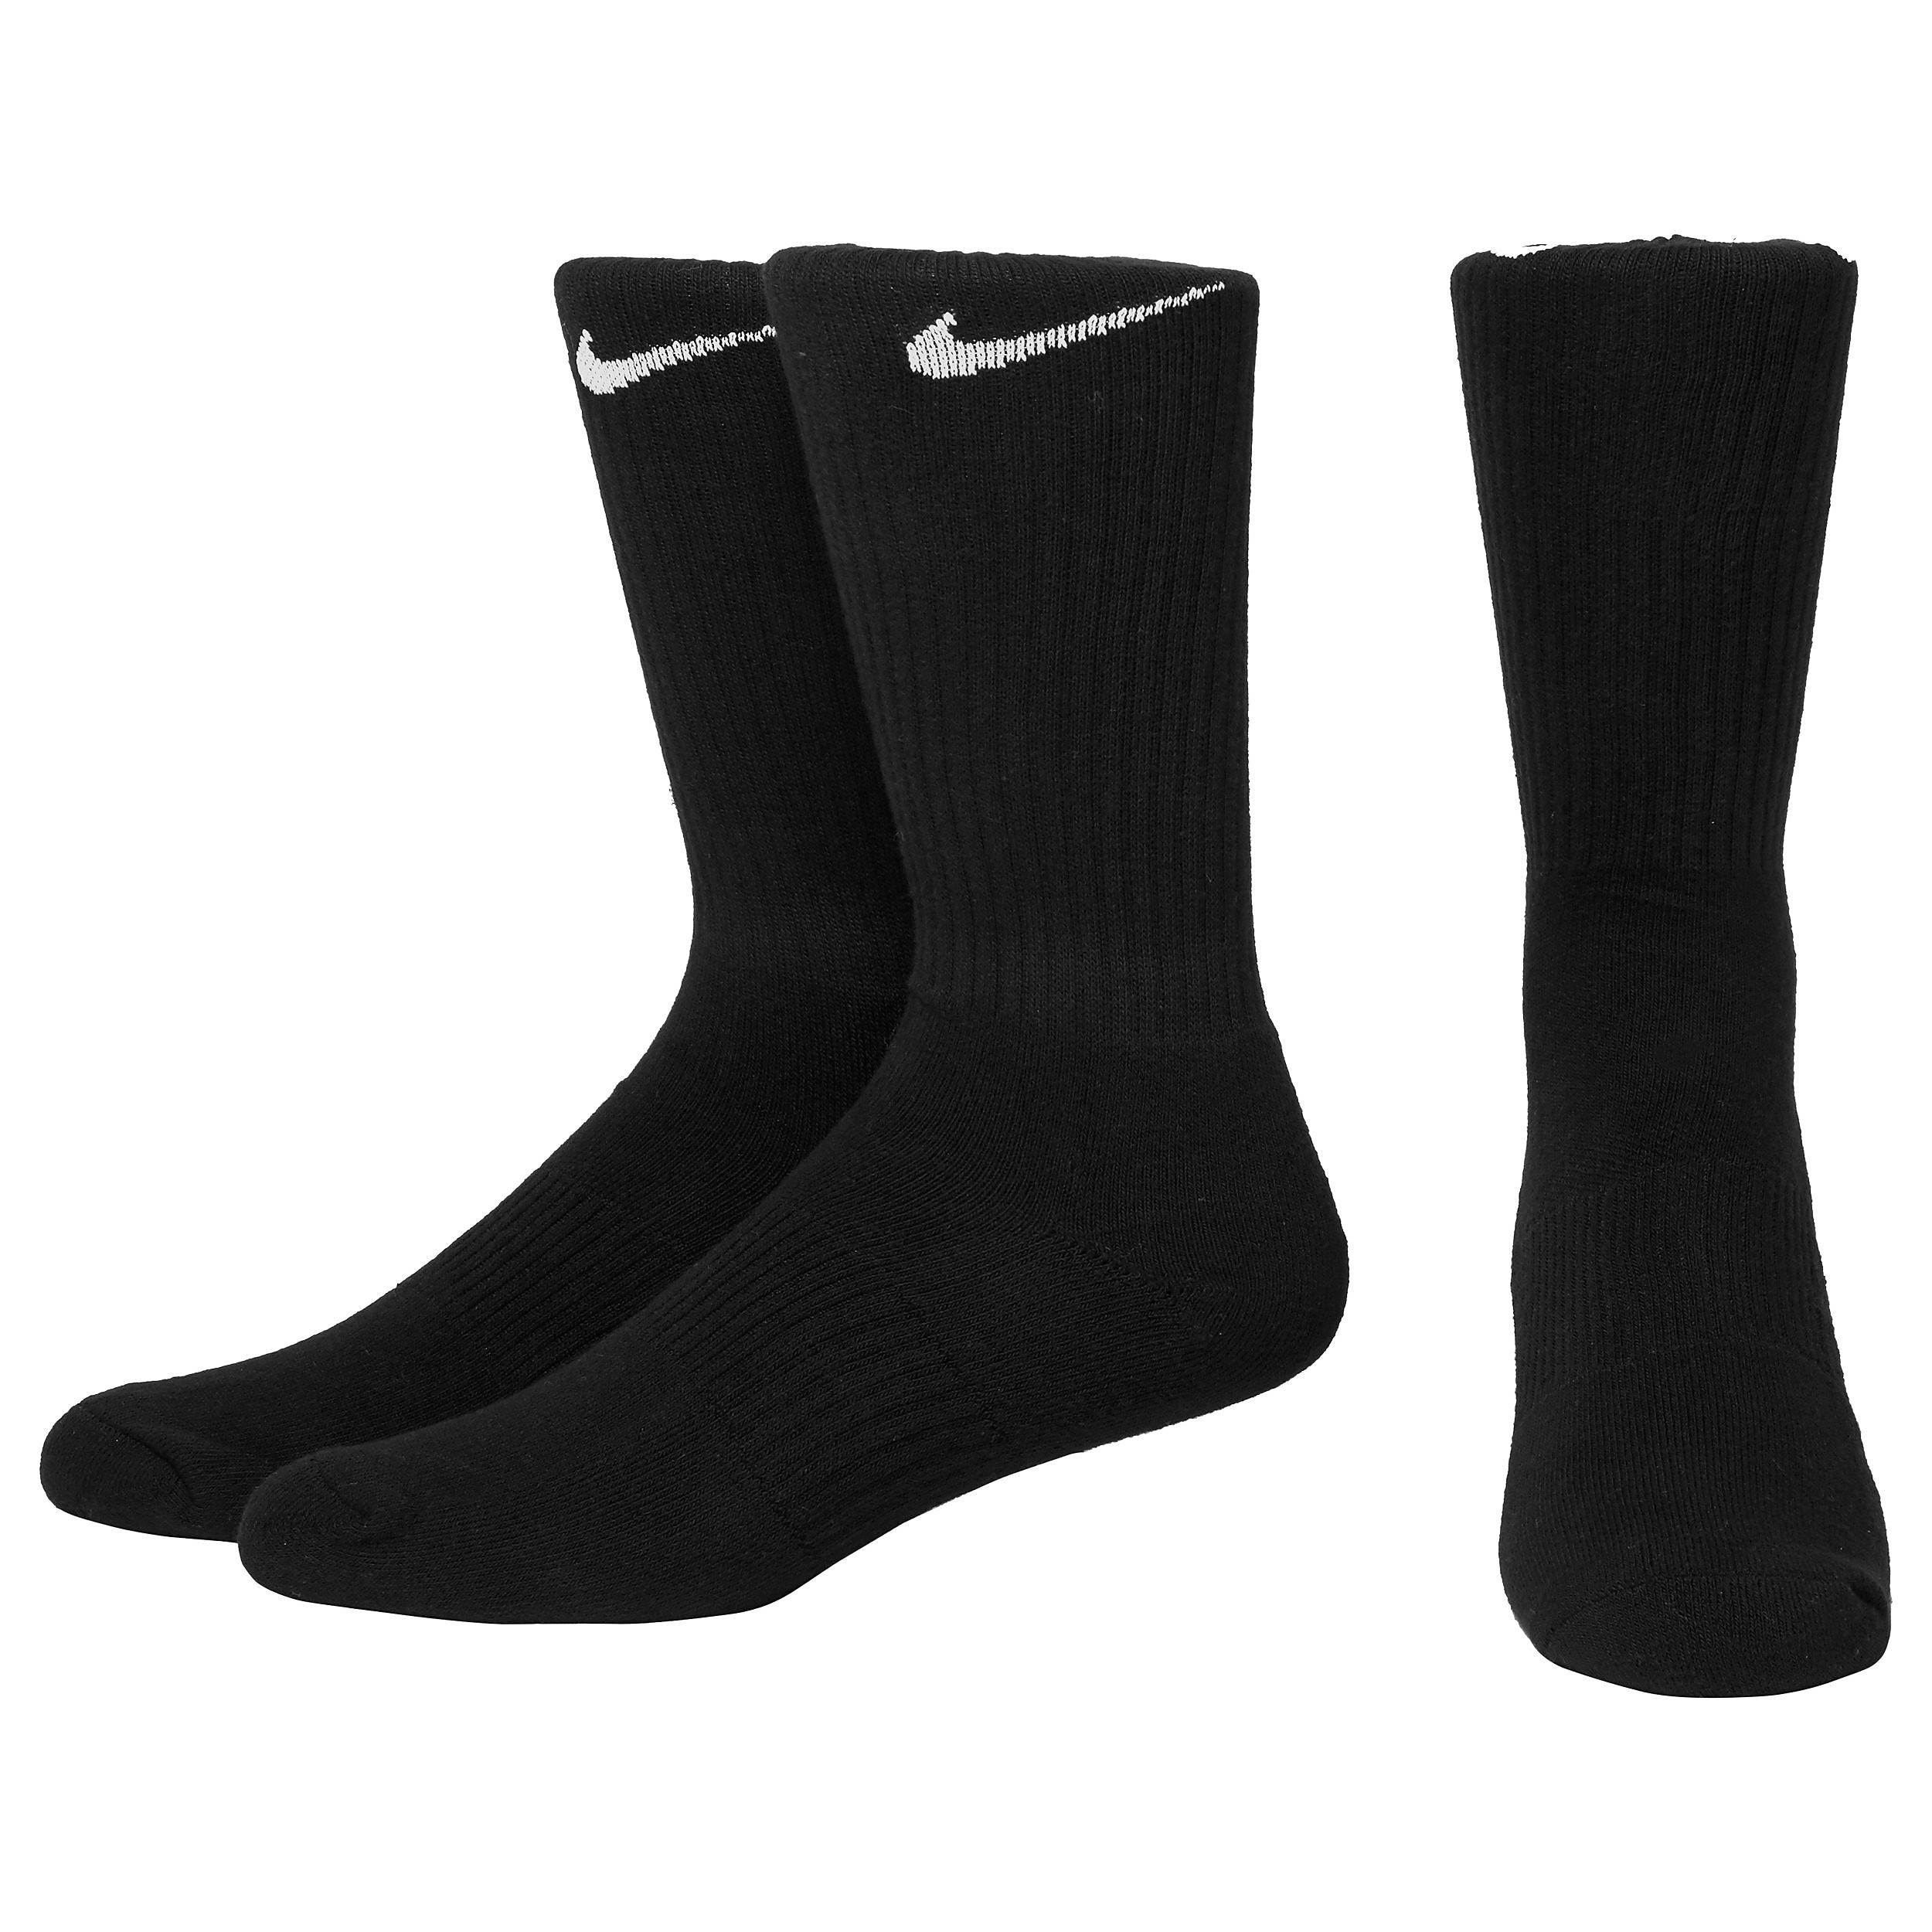 Nike Dri-FIT Cushion Crew Socks (3 Pack)